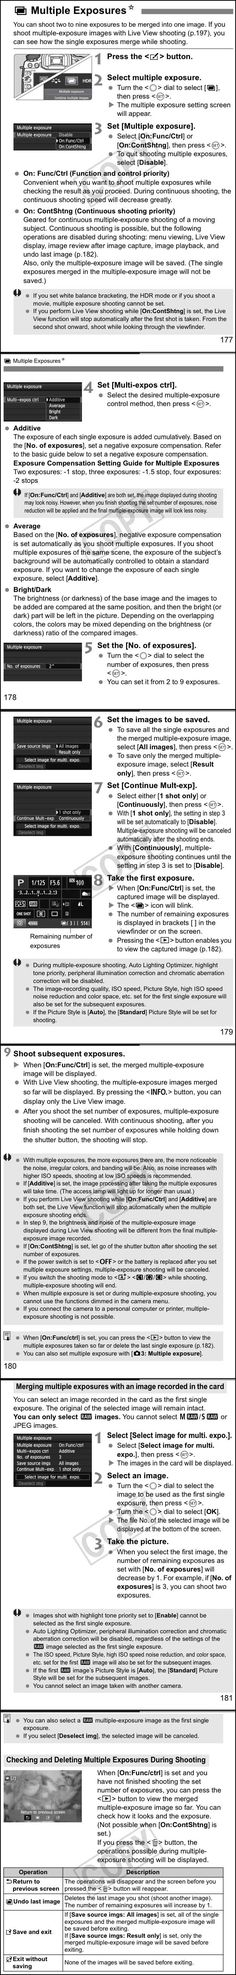 multiple exposure mode and how it works